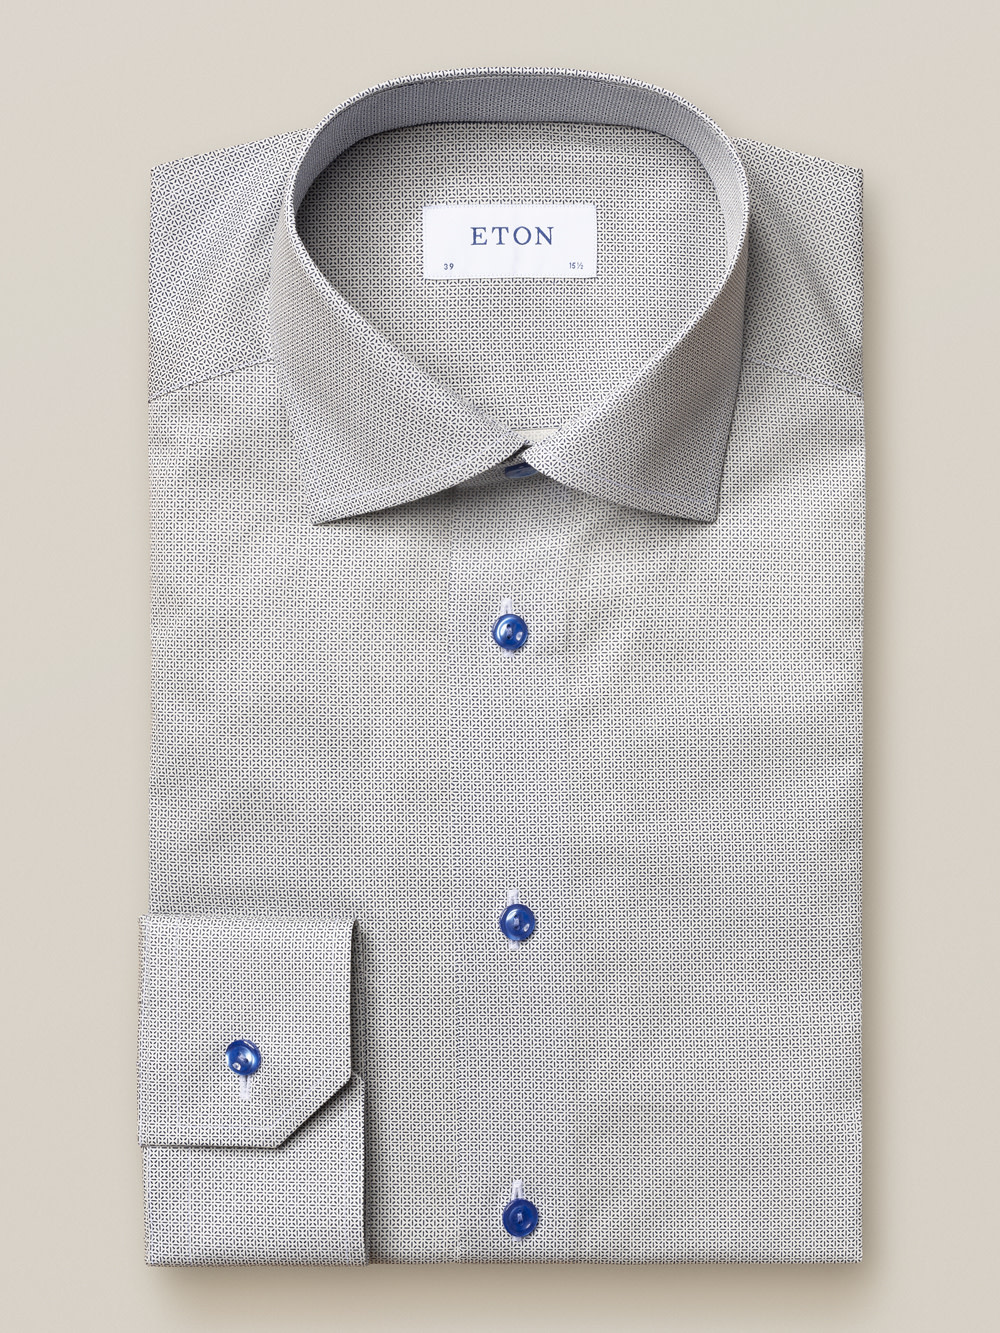 Eton Blue Micro Pattern fine twill shirt